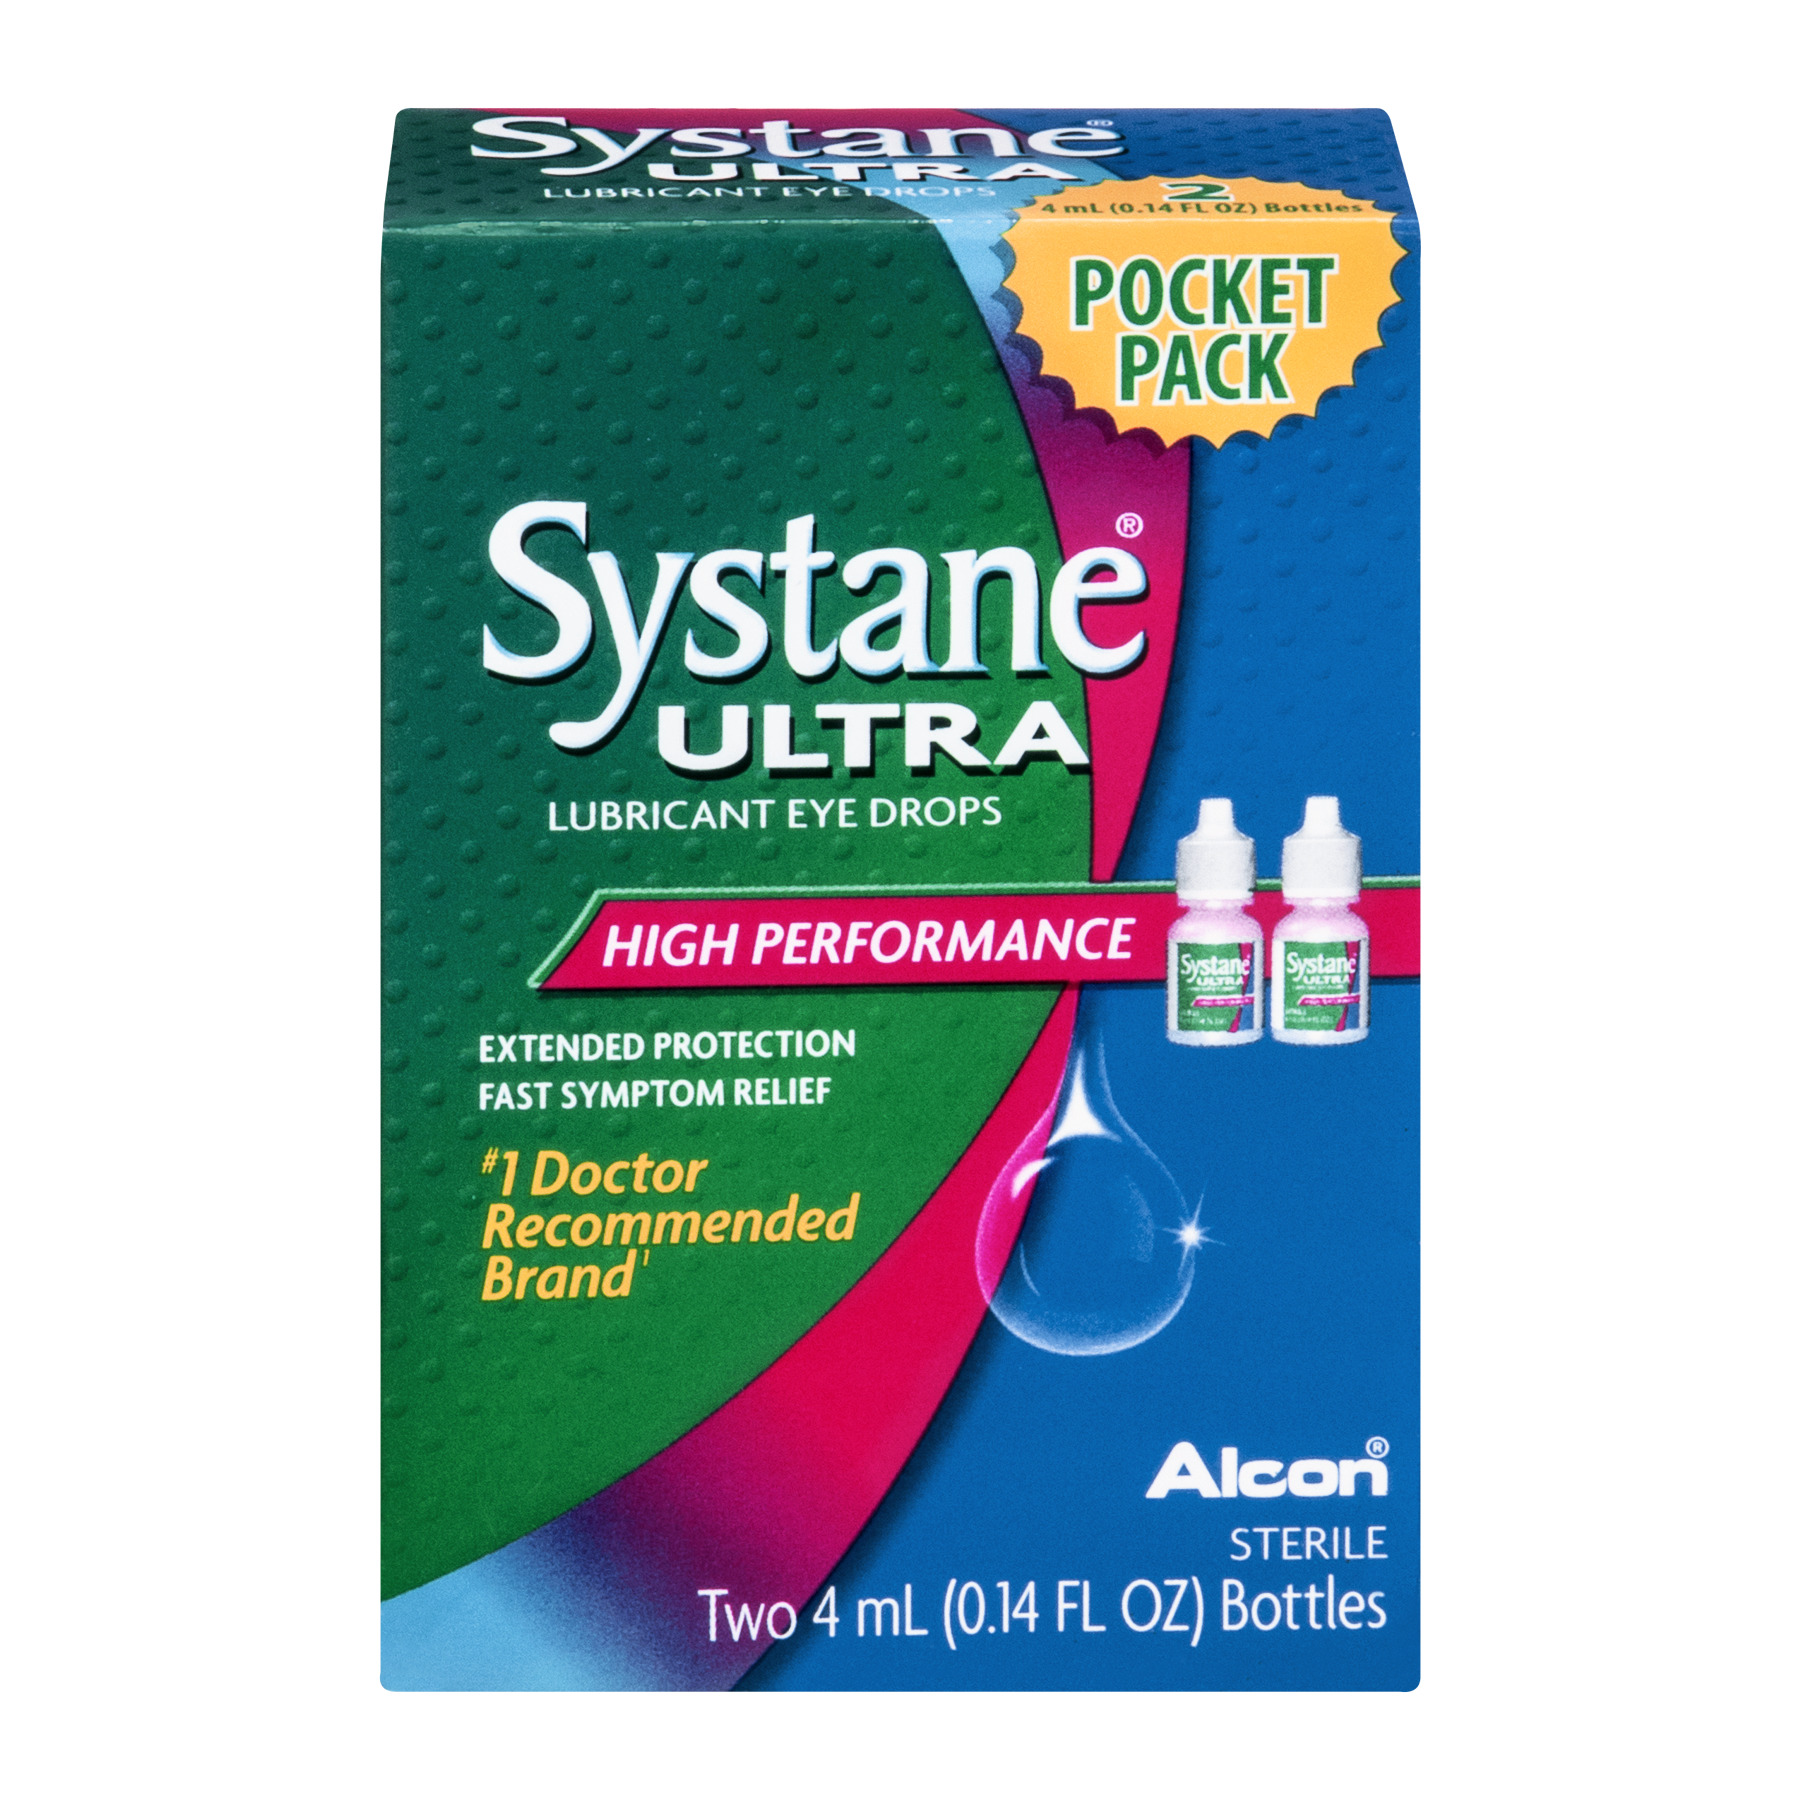 Systane Ultra Eye Drops Lubricant High Performance, 0.14 FL OZ